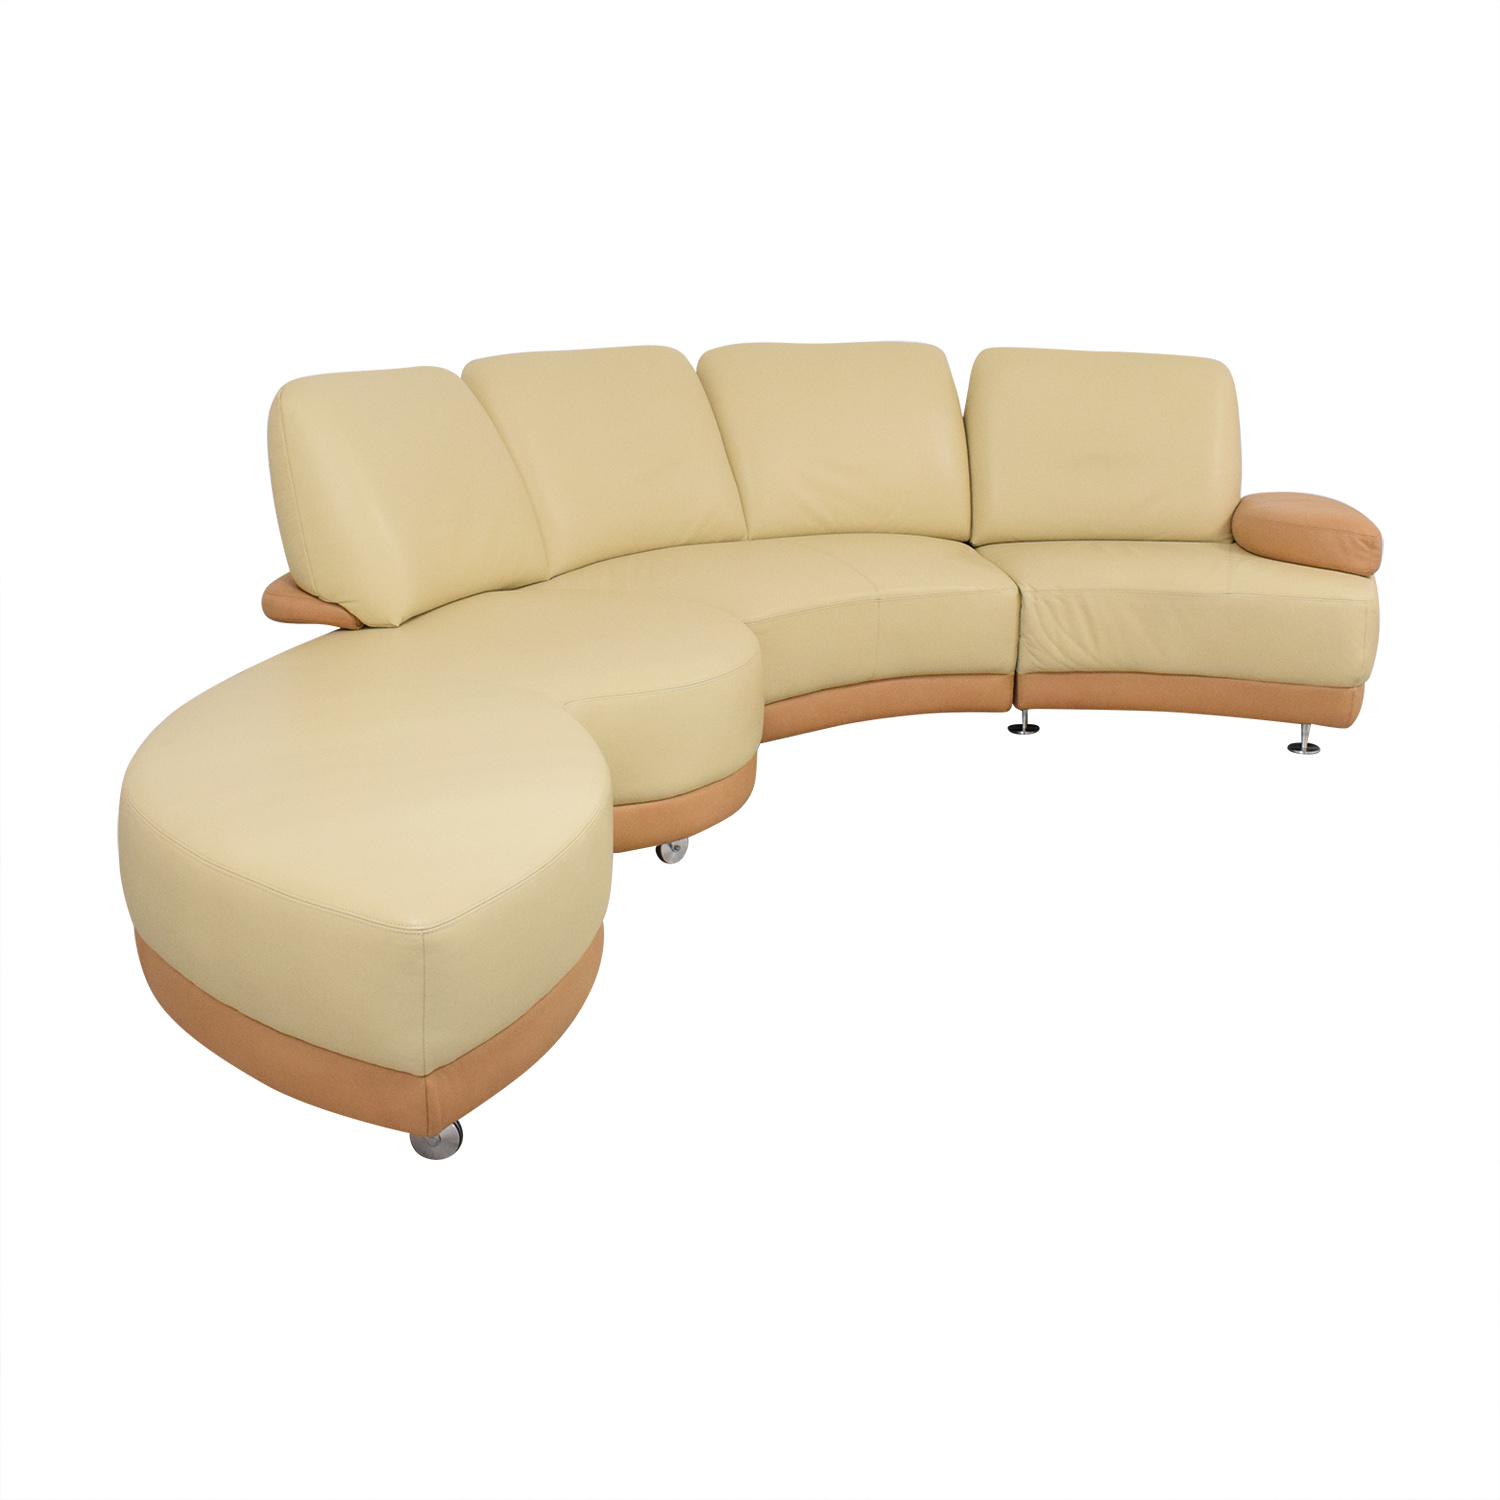 W. Schillig W. Schillig Crescent Shaped Sectional Sofa Sectionals